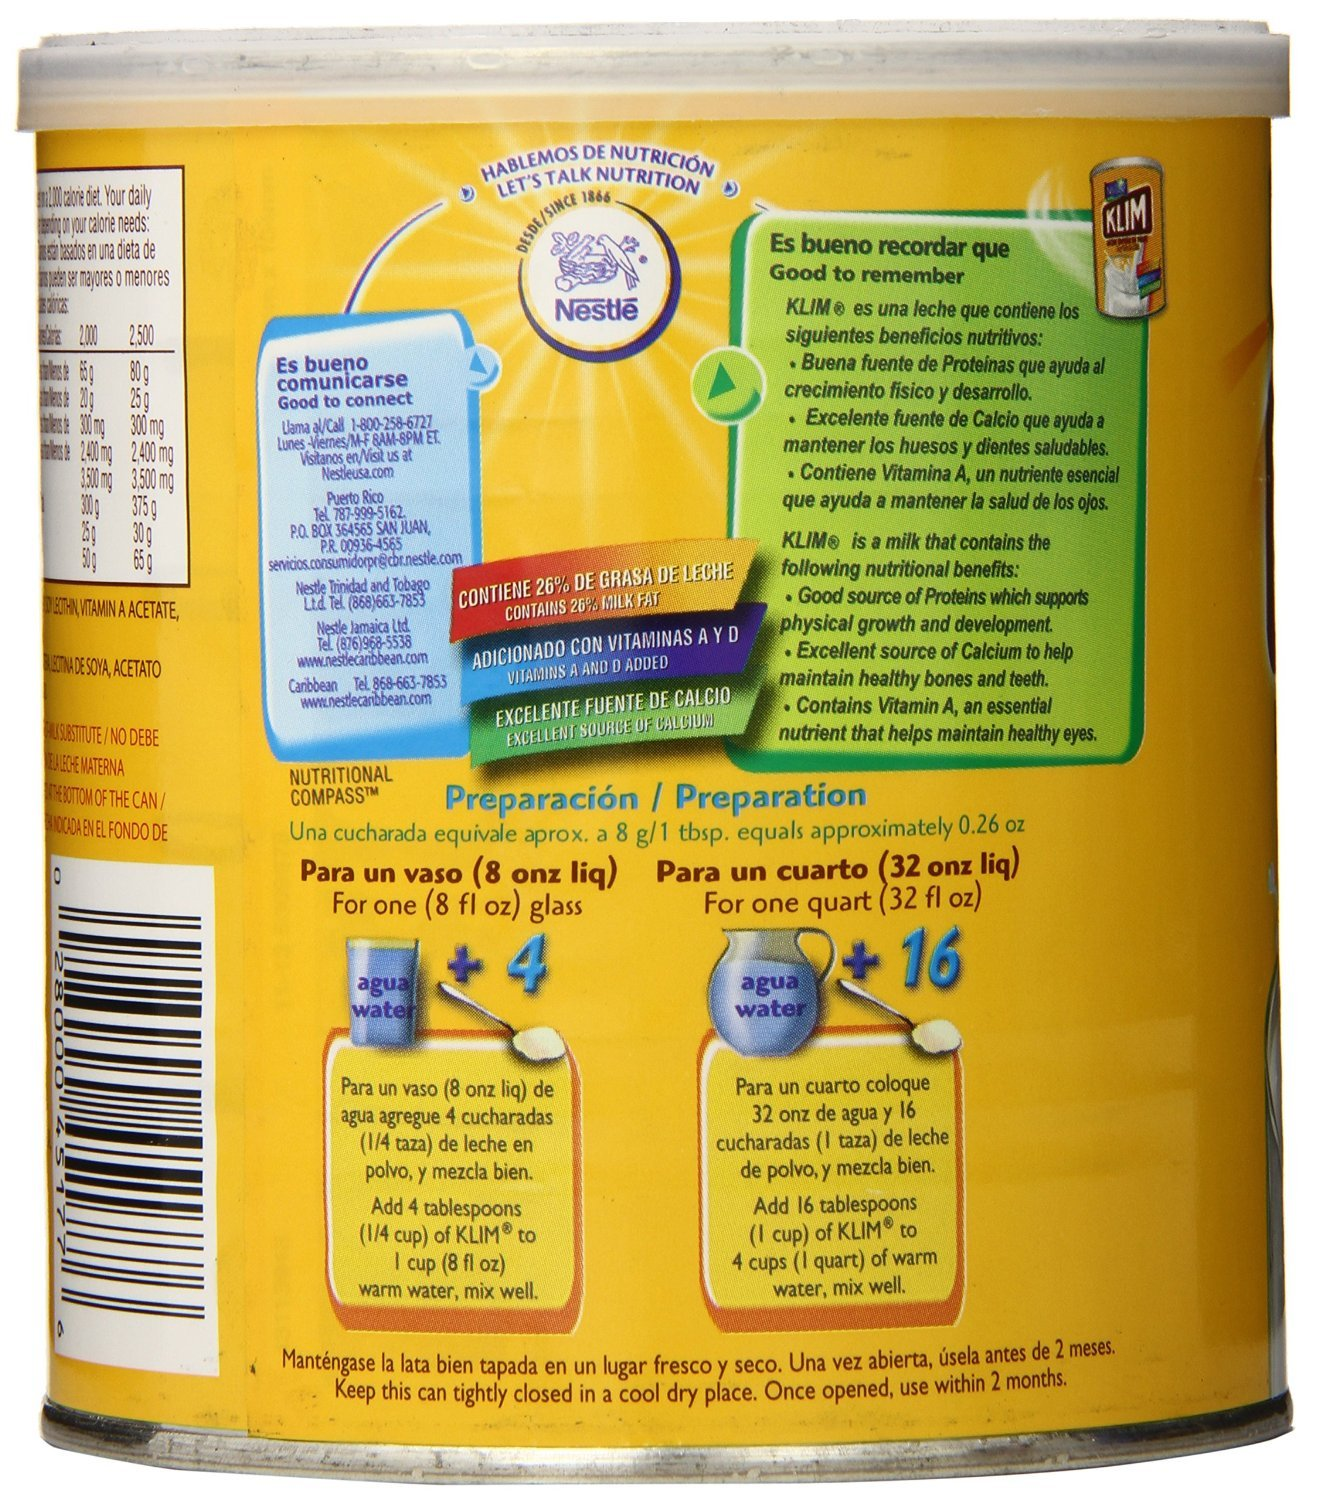 Amazon.com : Klim Full Cream Milk Powder, 12.69 Ounce 3 Pack : Grocery & Gourmet Food